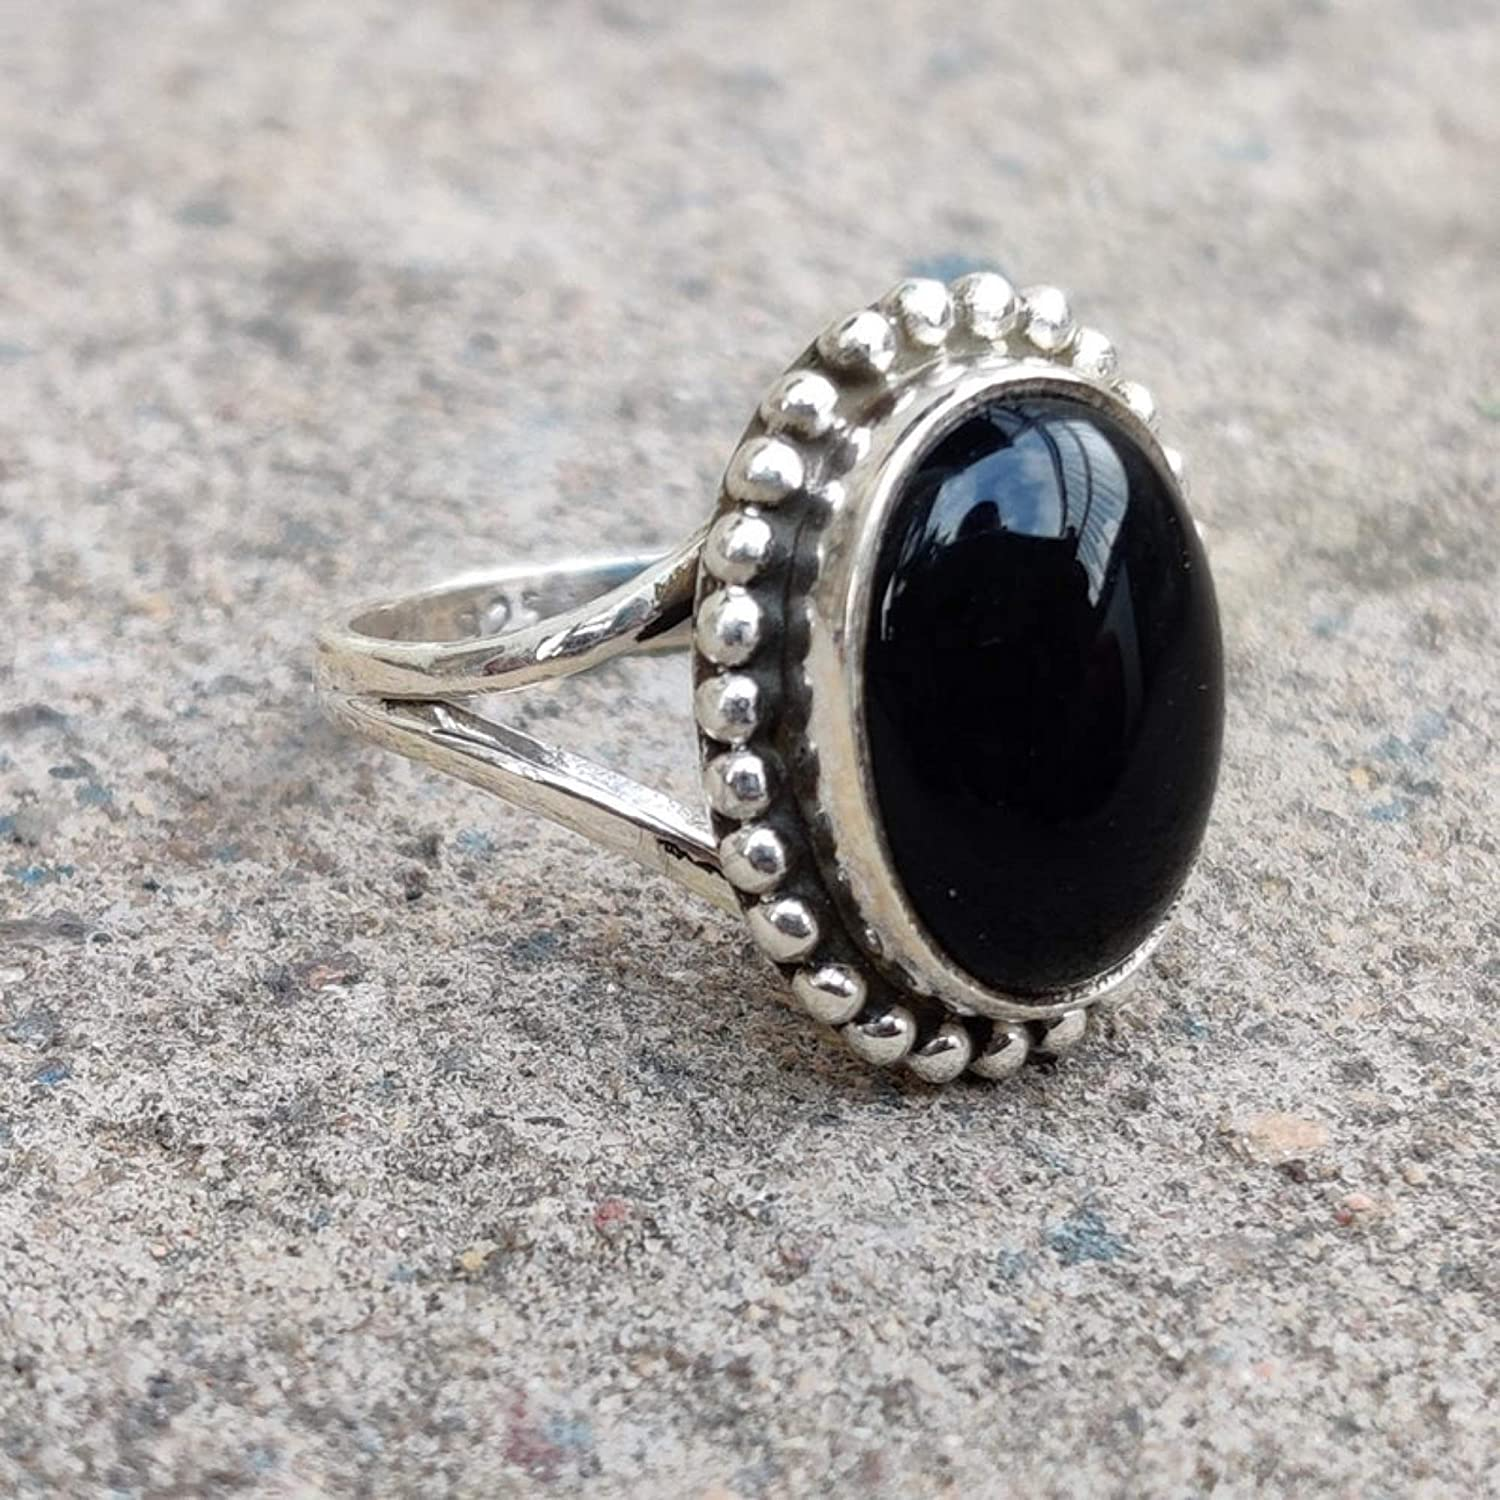 Black Stone Onyx Rings Size 6 7 8 9 10 925 Sterling Silver Statement Rings For Women Girl Birthday Christmas gifts